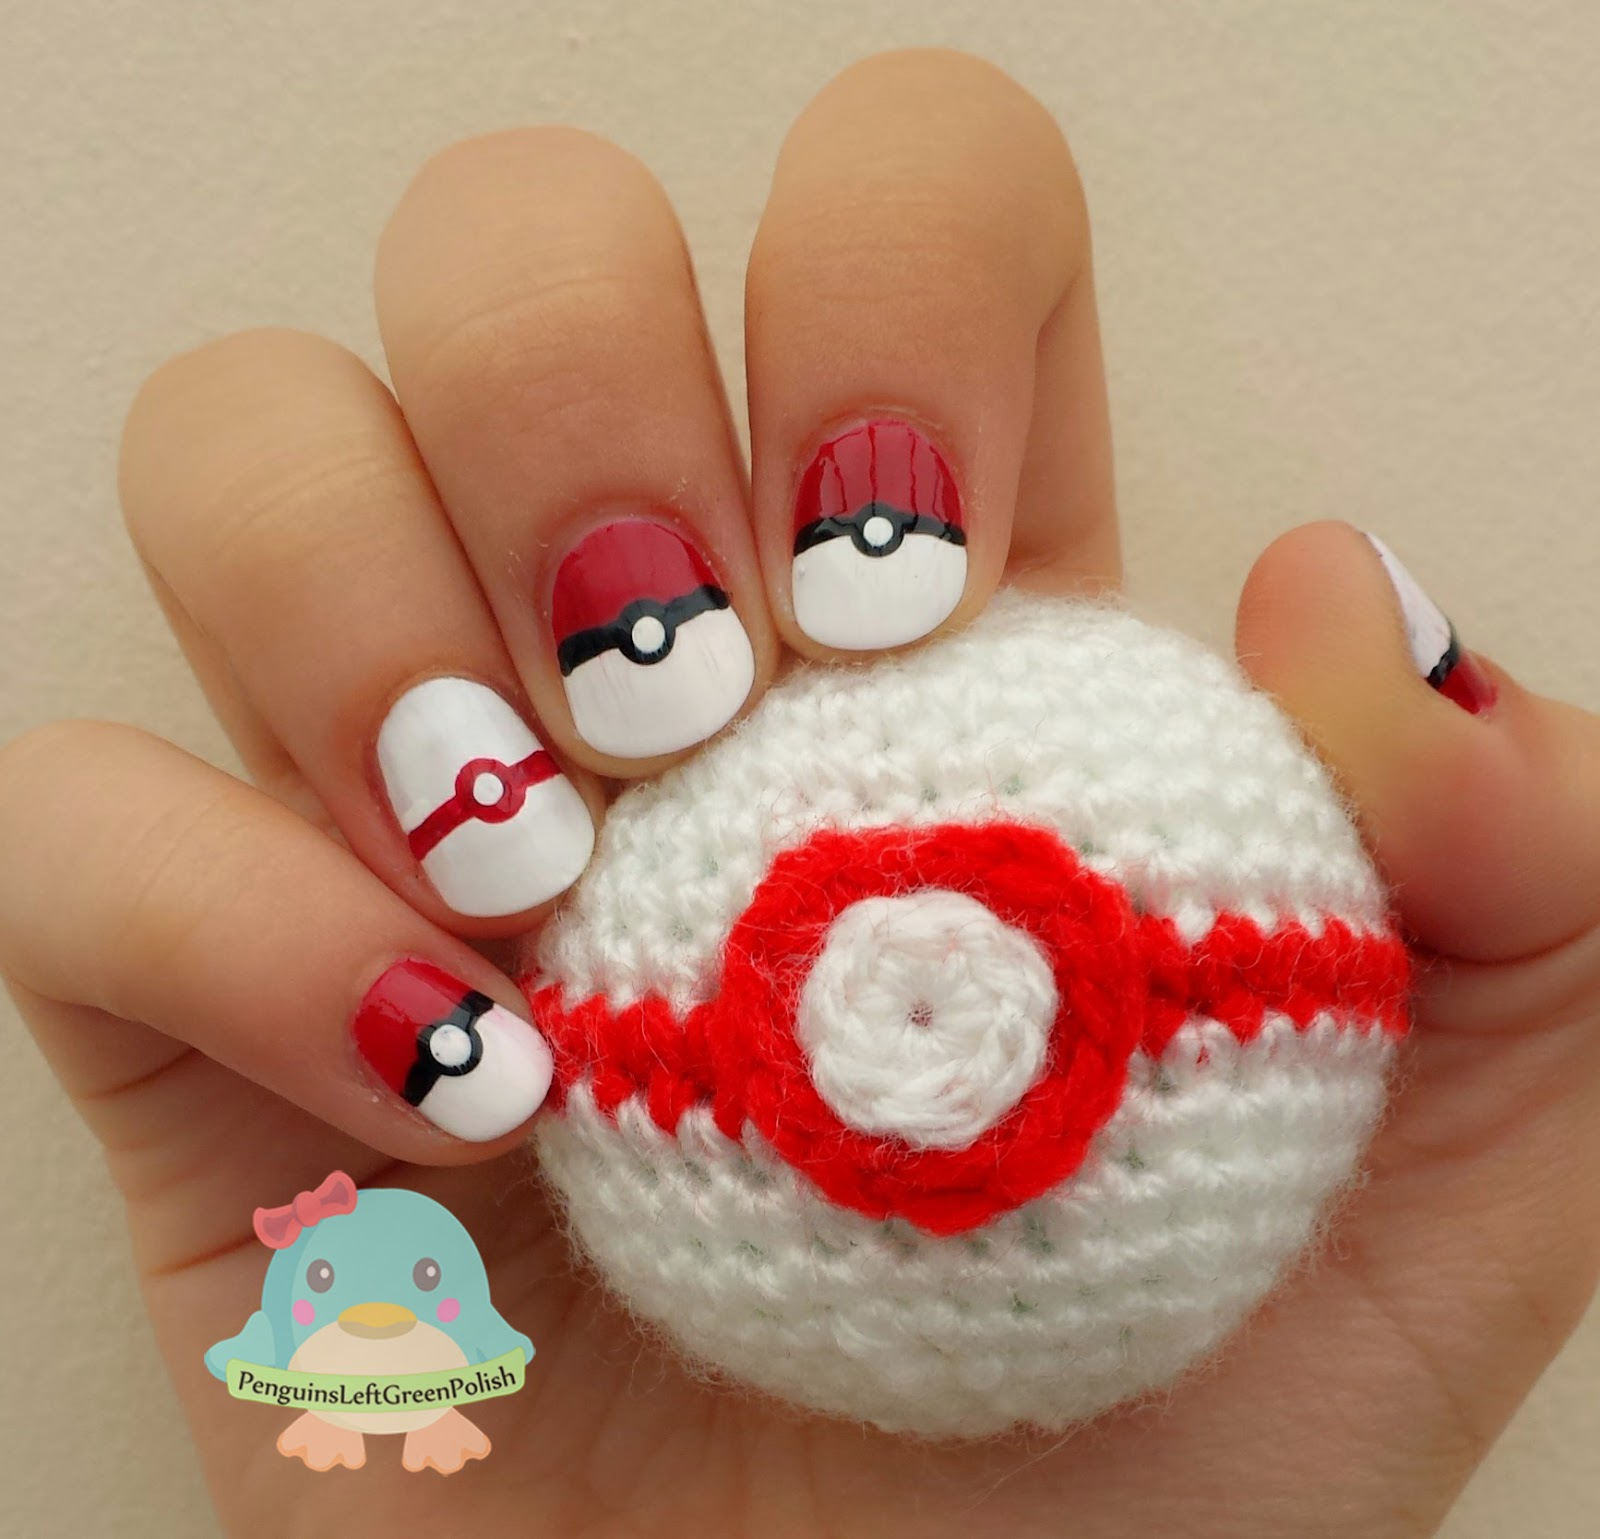 unhas-decoradas-pokemon-11